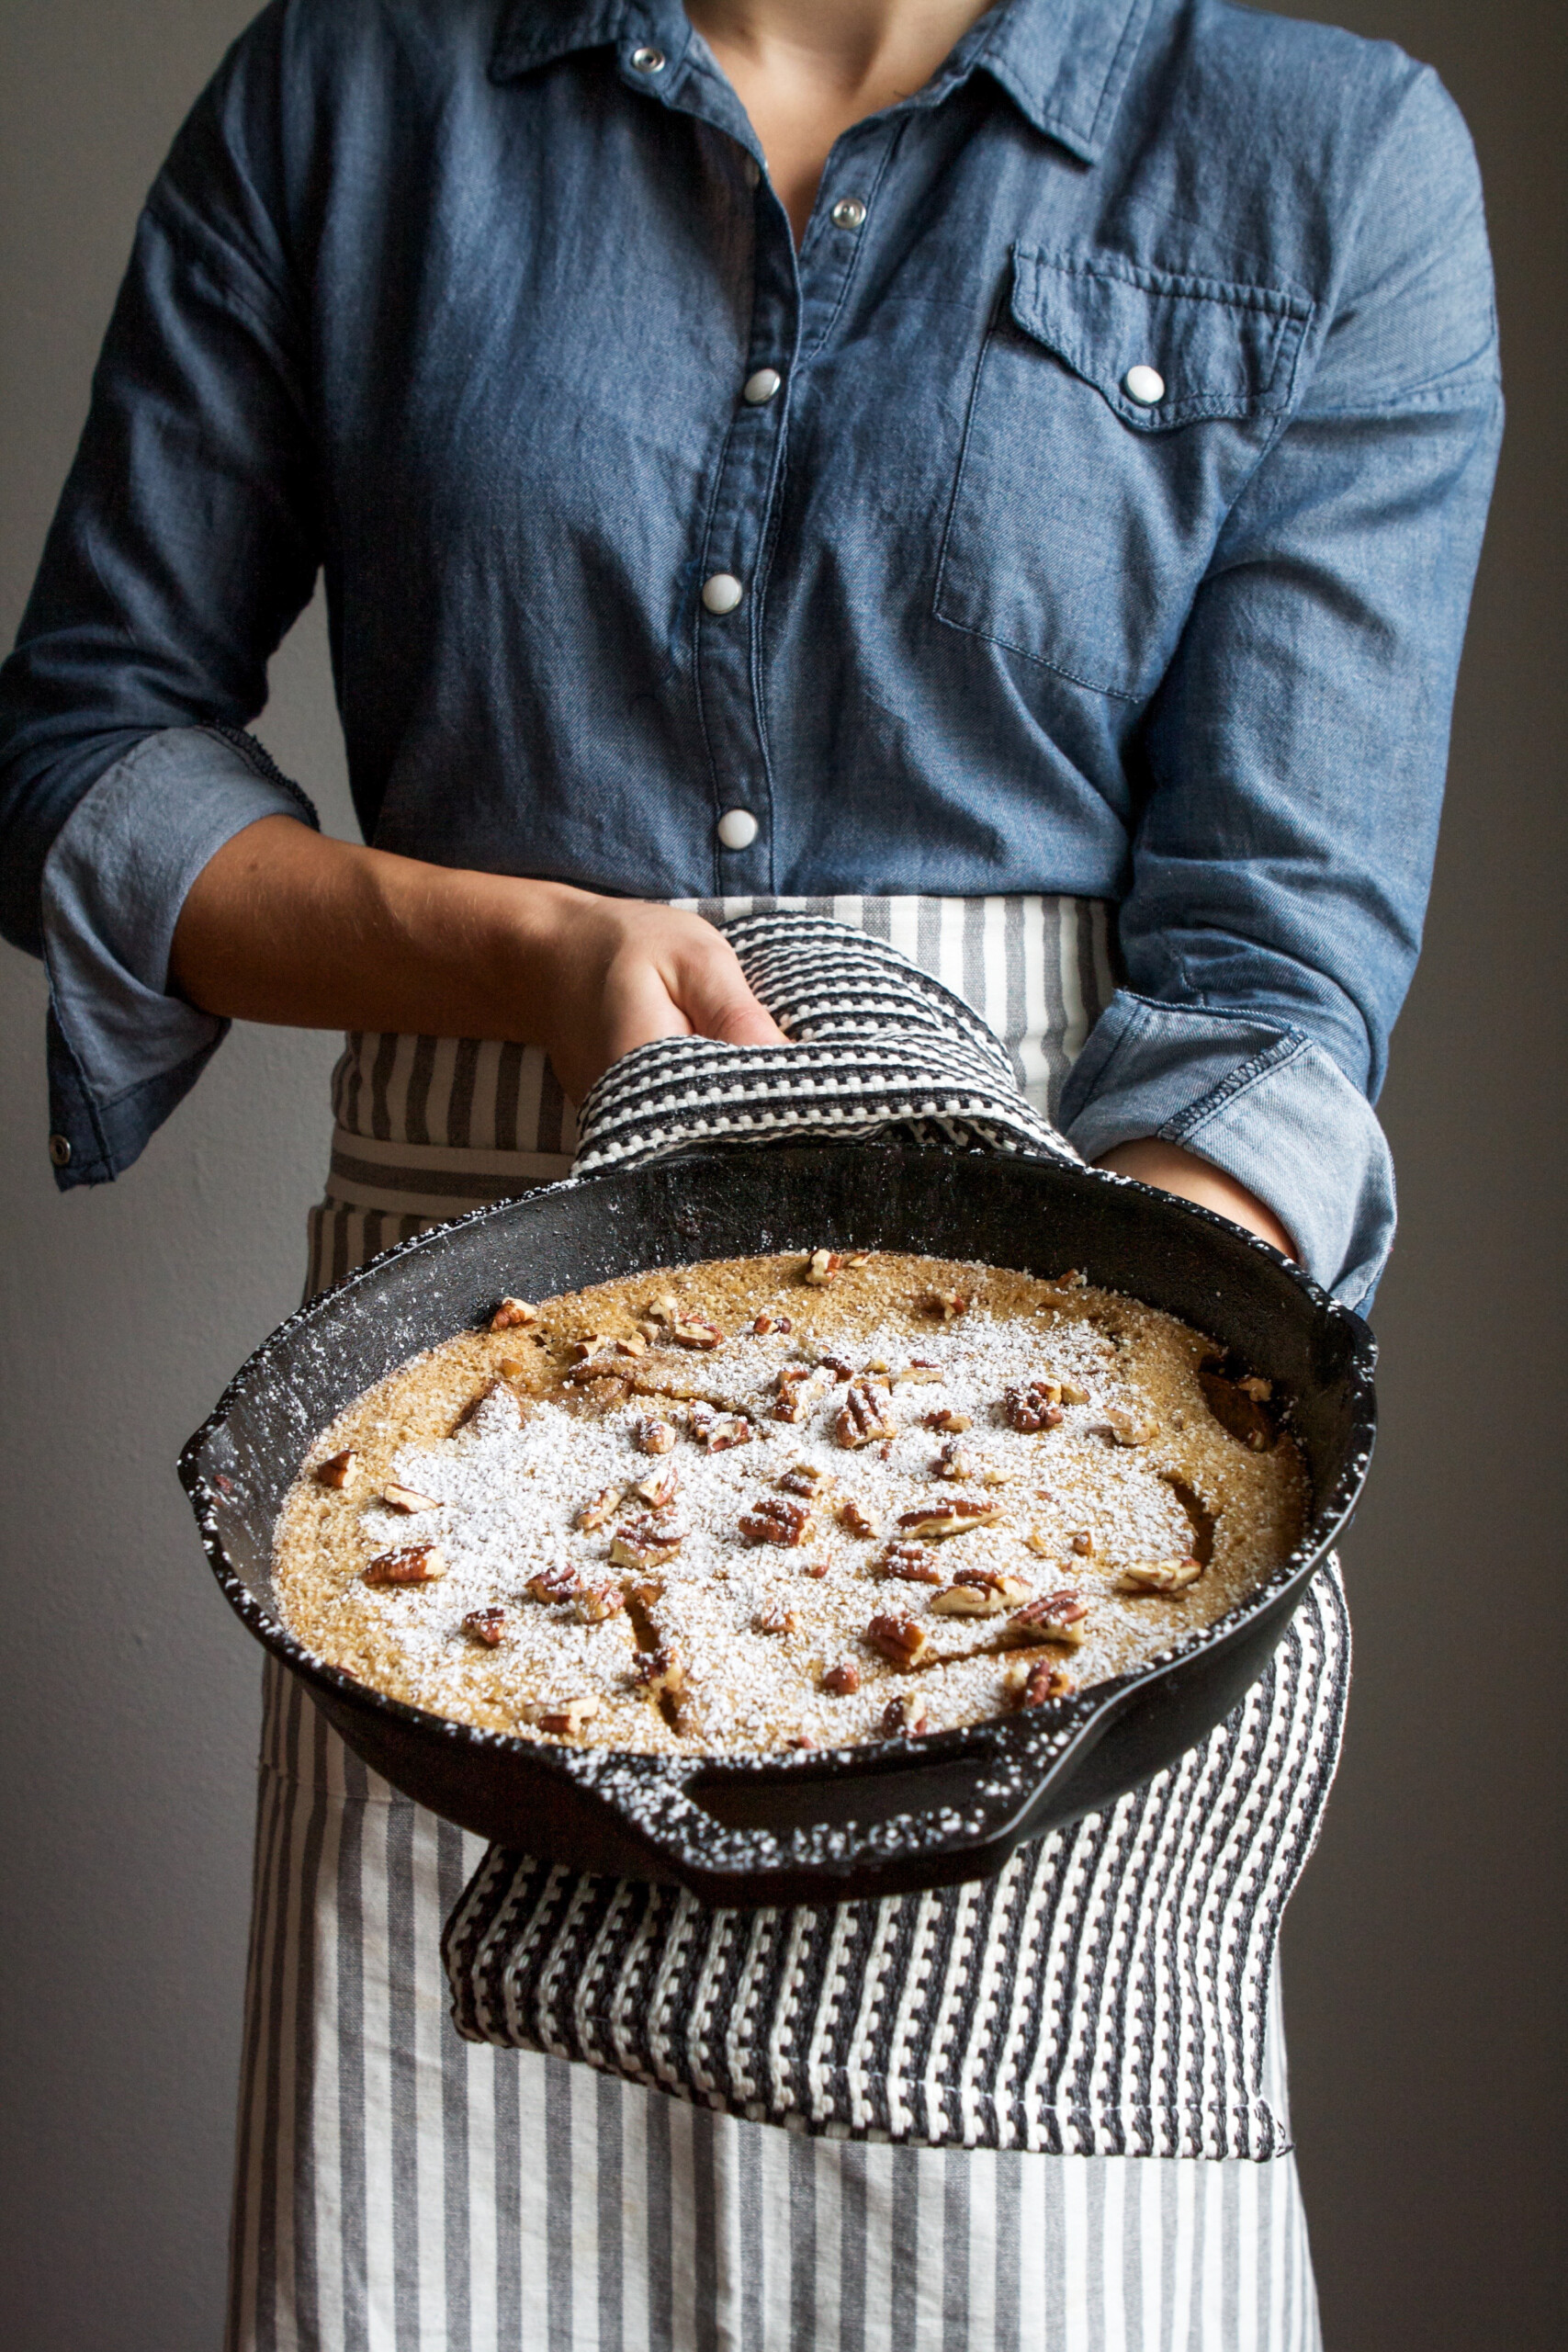 Photo of a cook holding a cast iron skillet with a puffed pancake in it